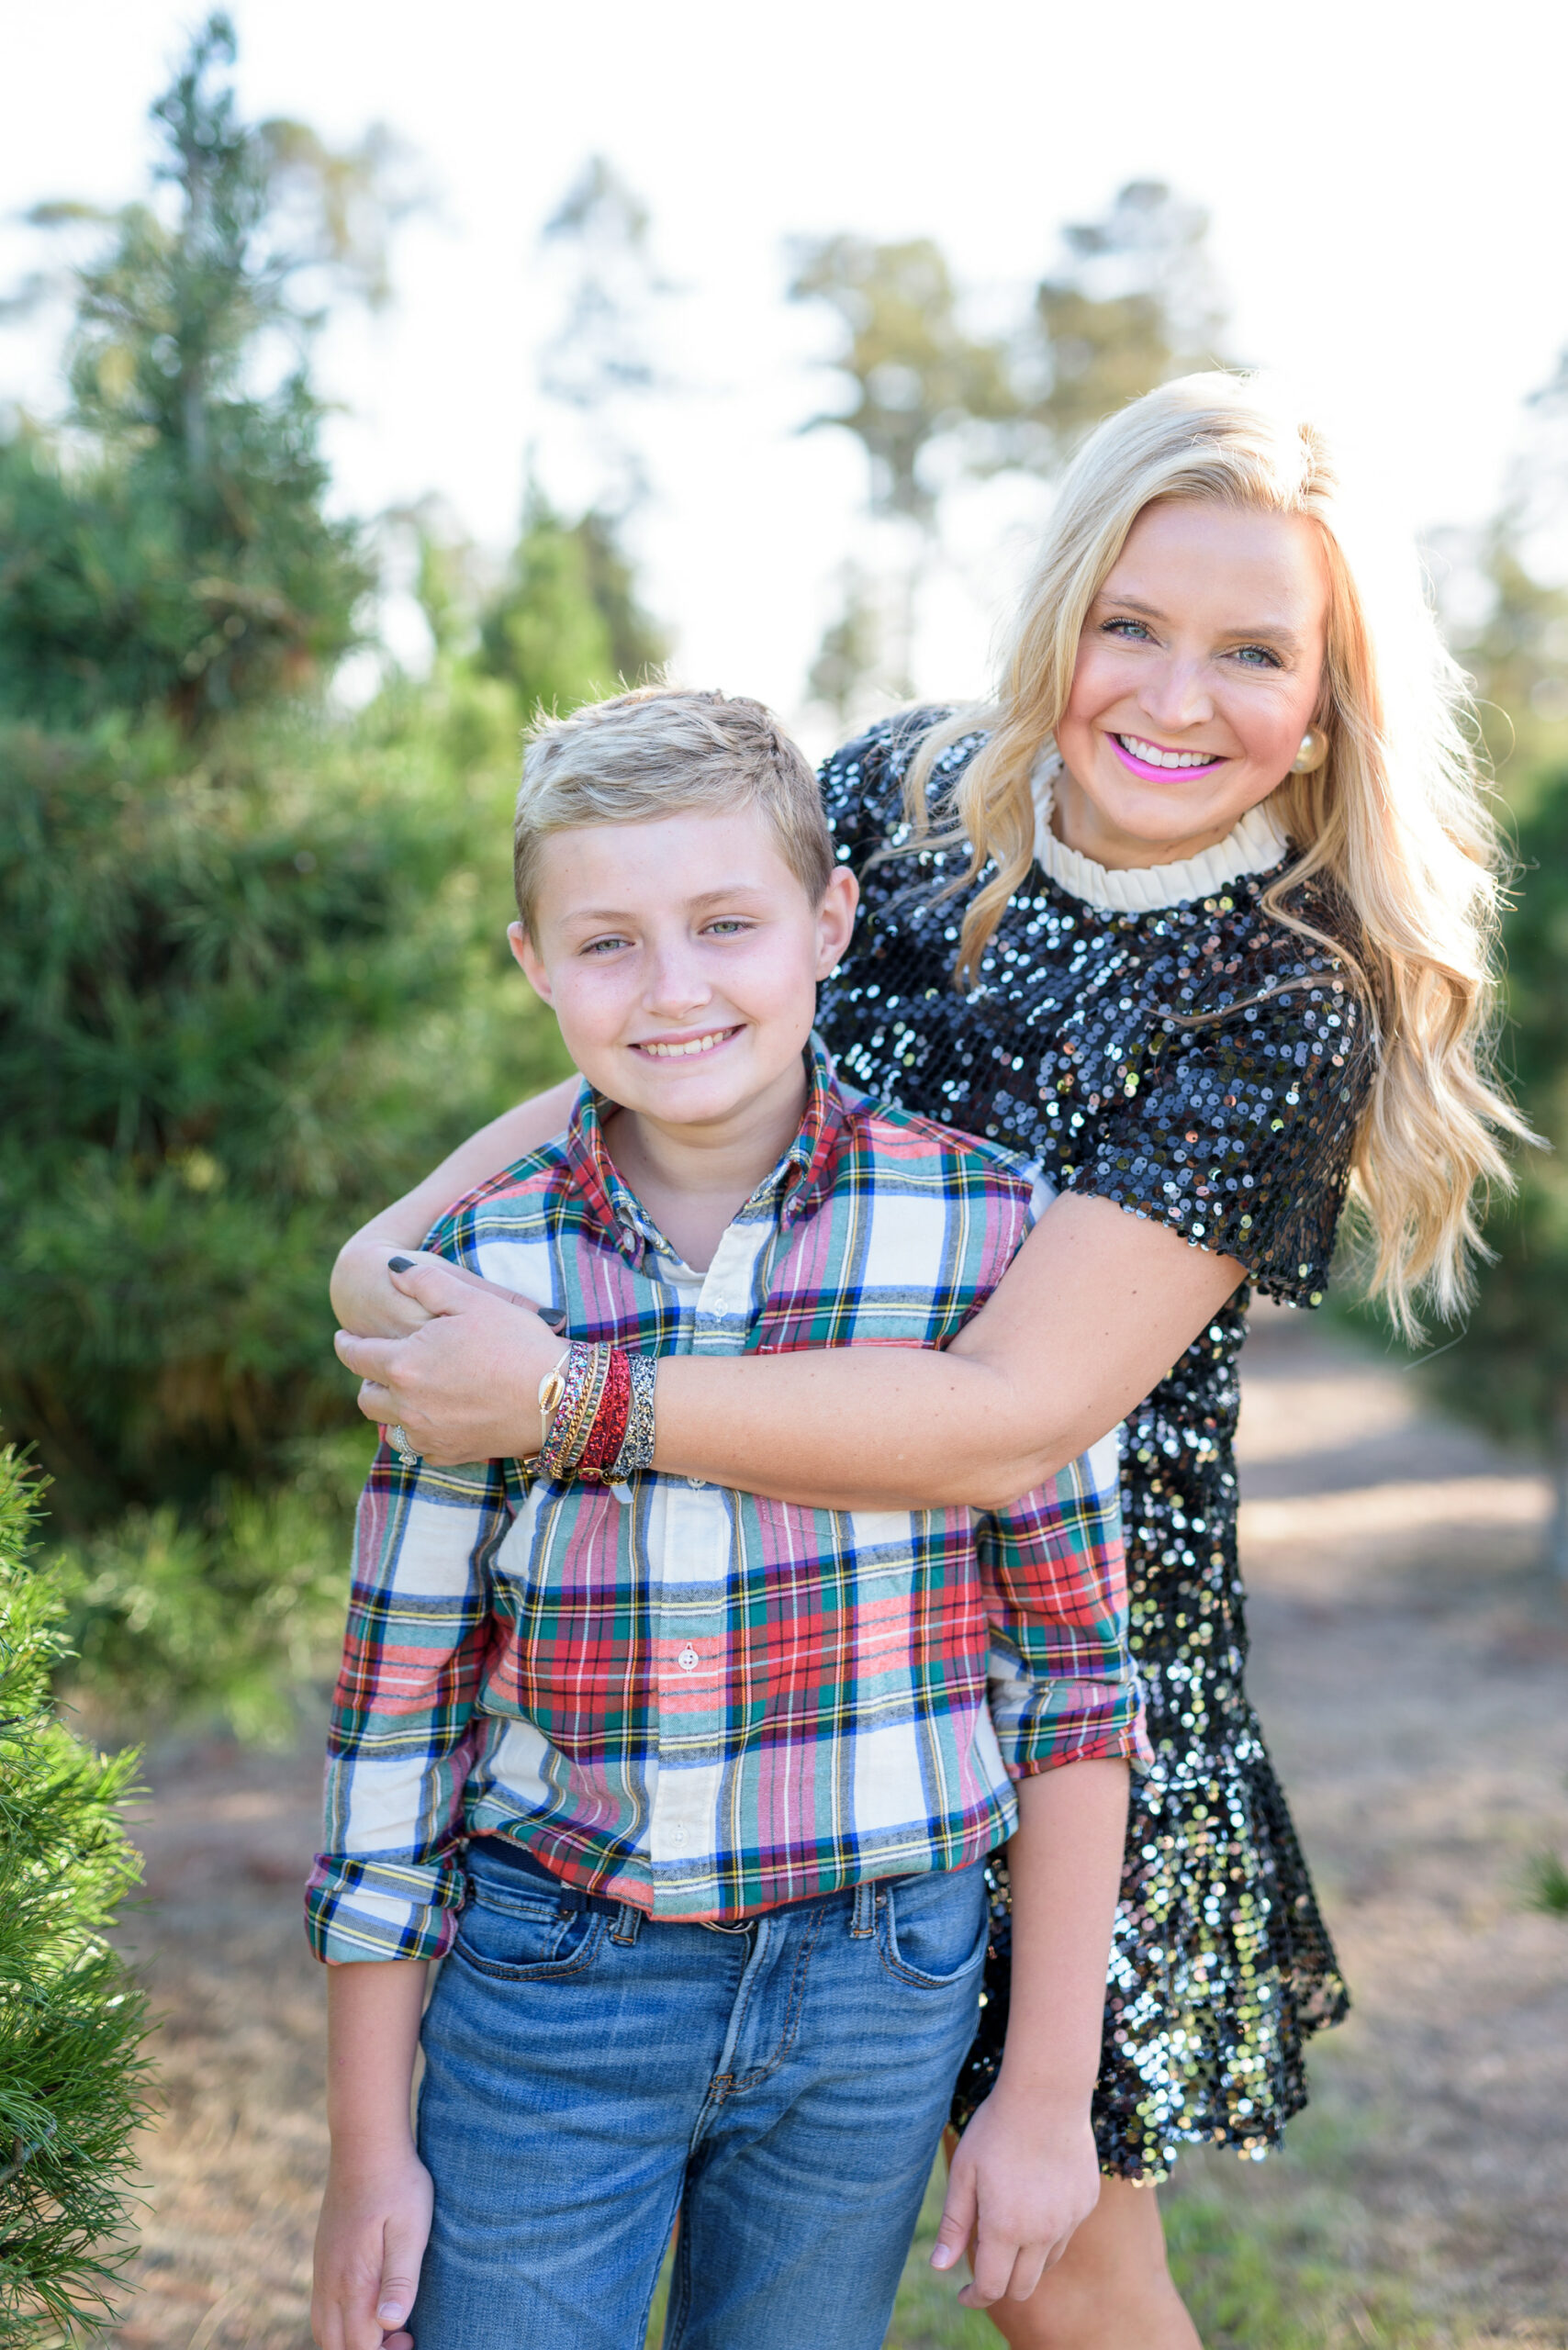 Christmas Tree Farm Photos by popular Houston lifestyle blog, Fancy Ashley: image of a mom and son standing together in a row of pine trees and wearing a black sequin dress, black suede ankle boots, plaid button up shirt, and jeans.